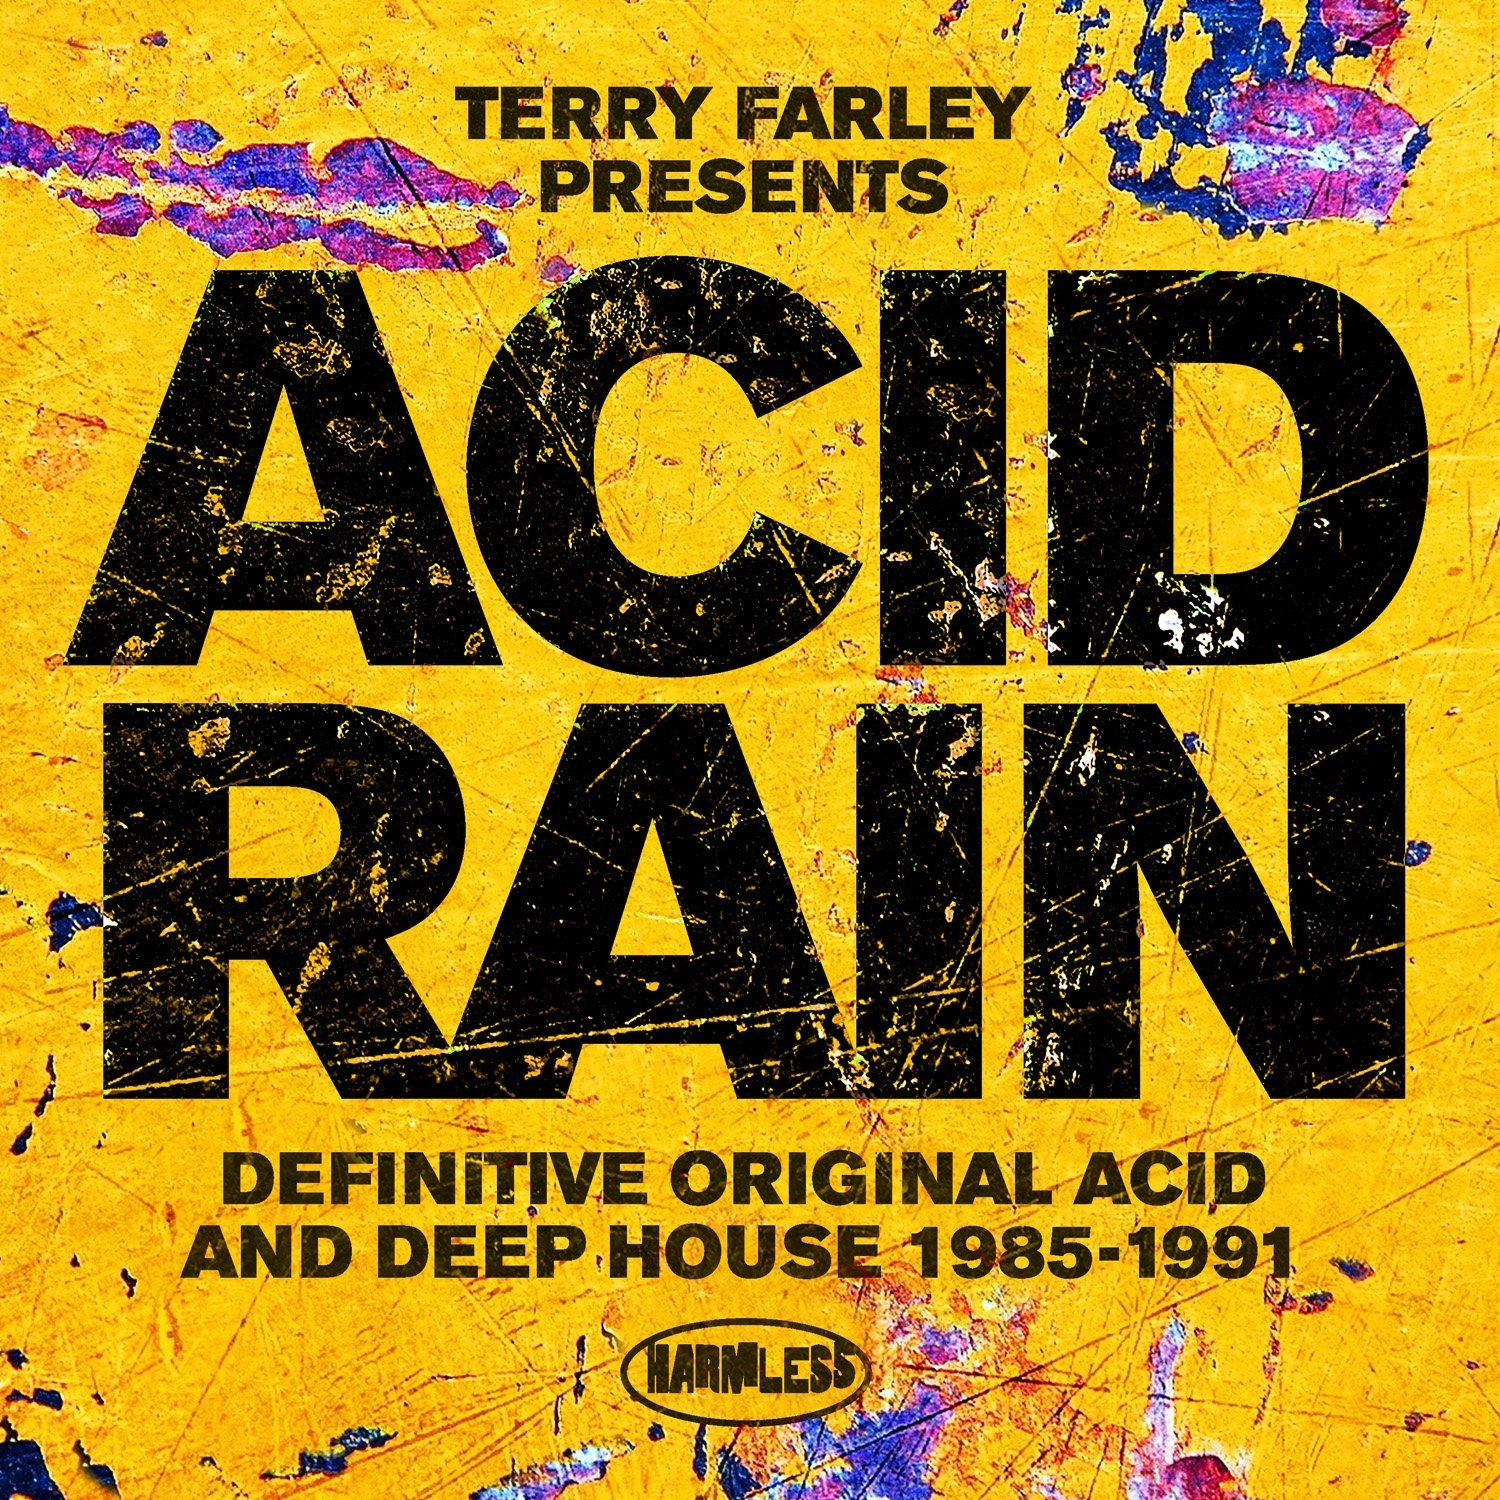 Terry farley to survey history of acid and deep house on for Acid house history